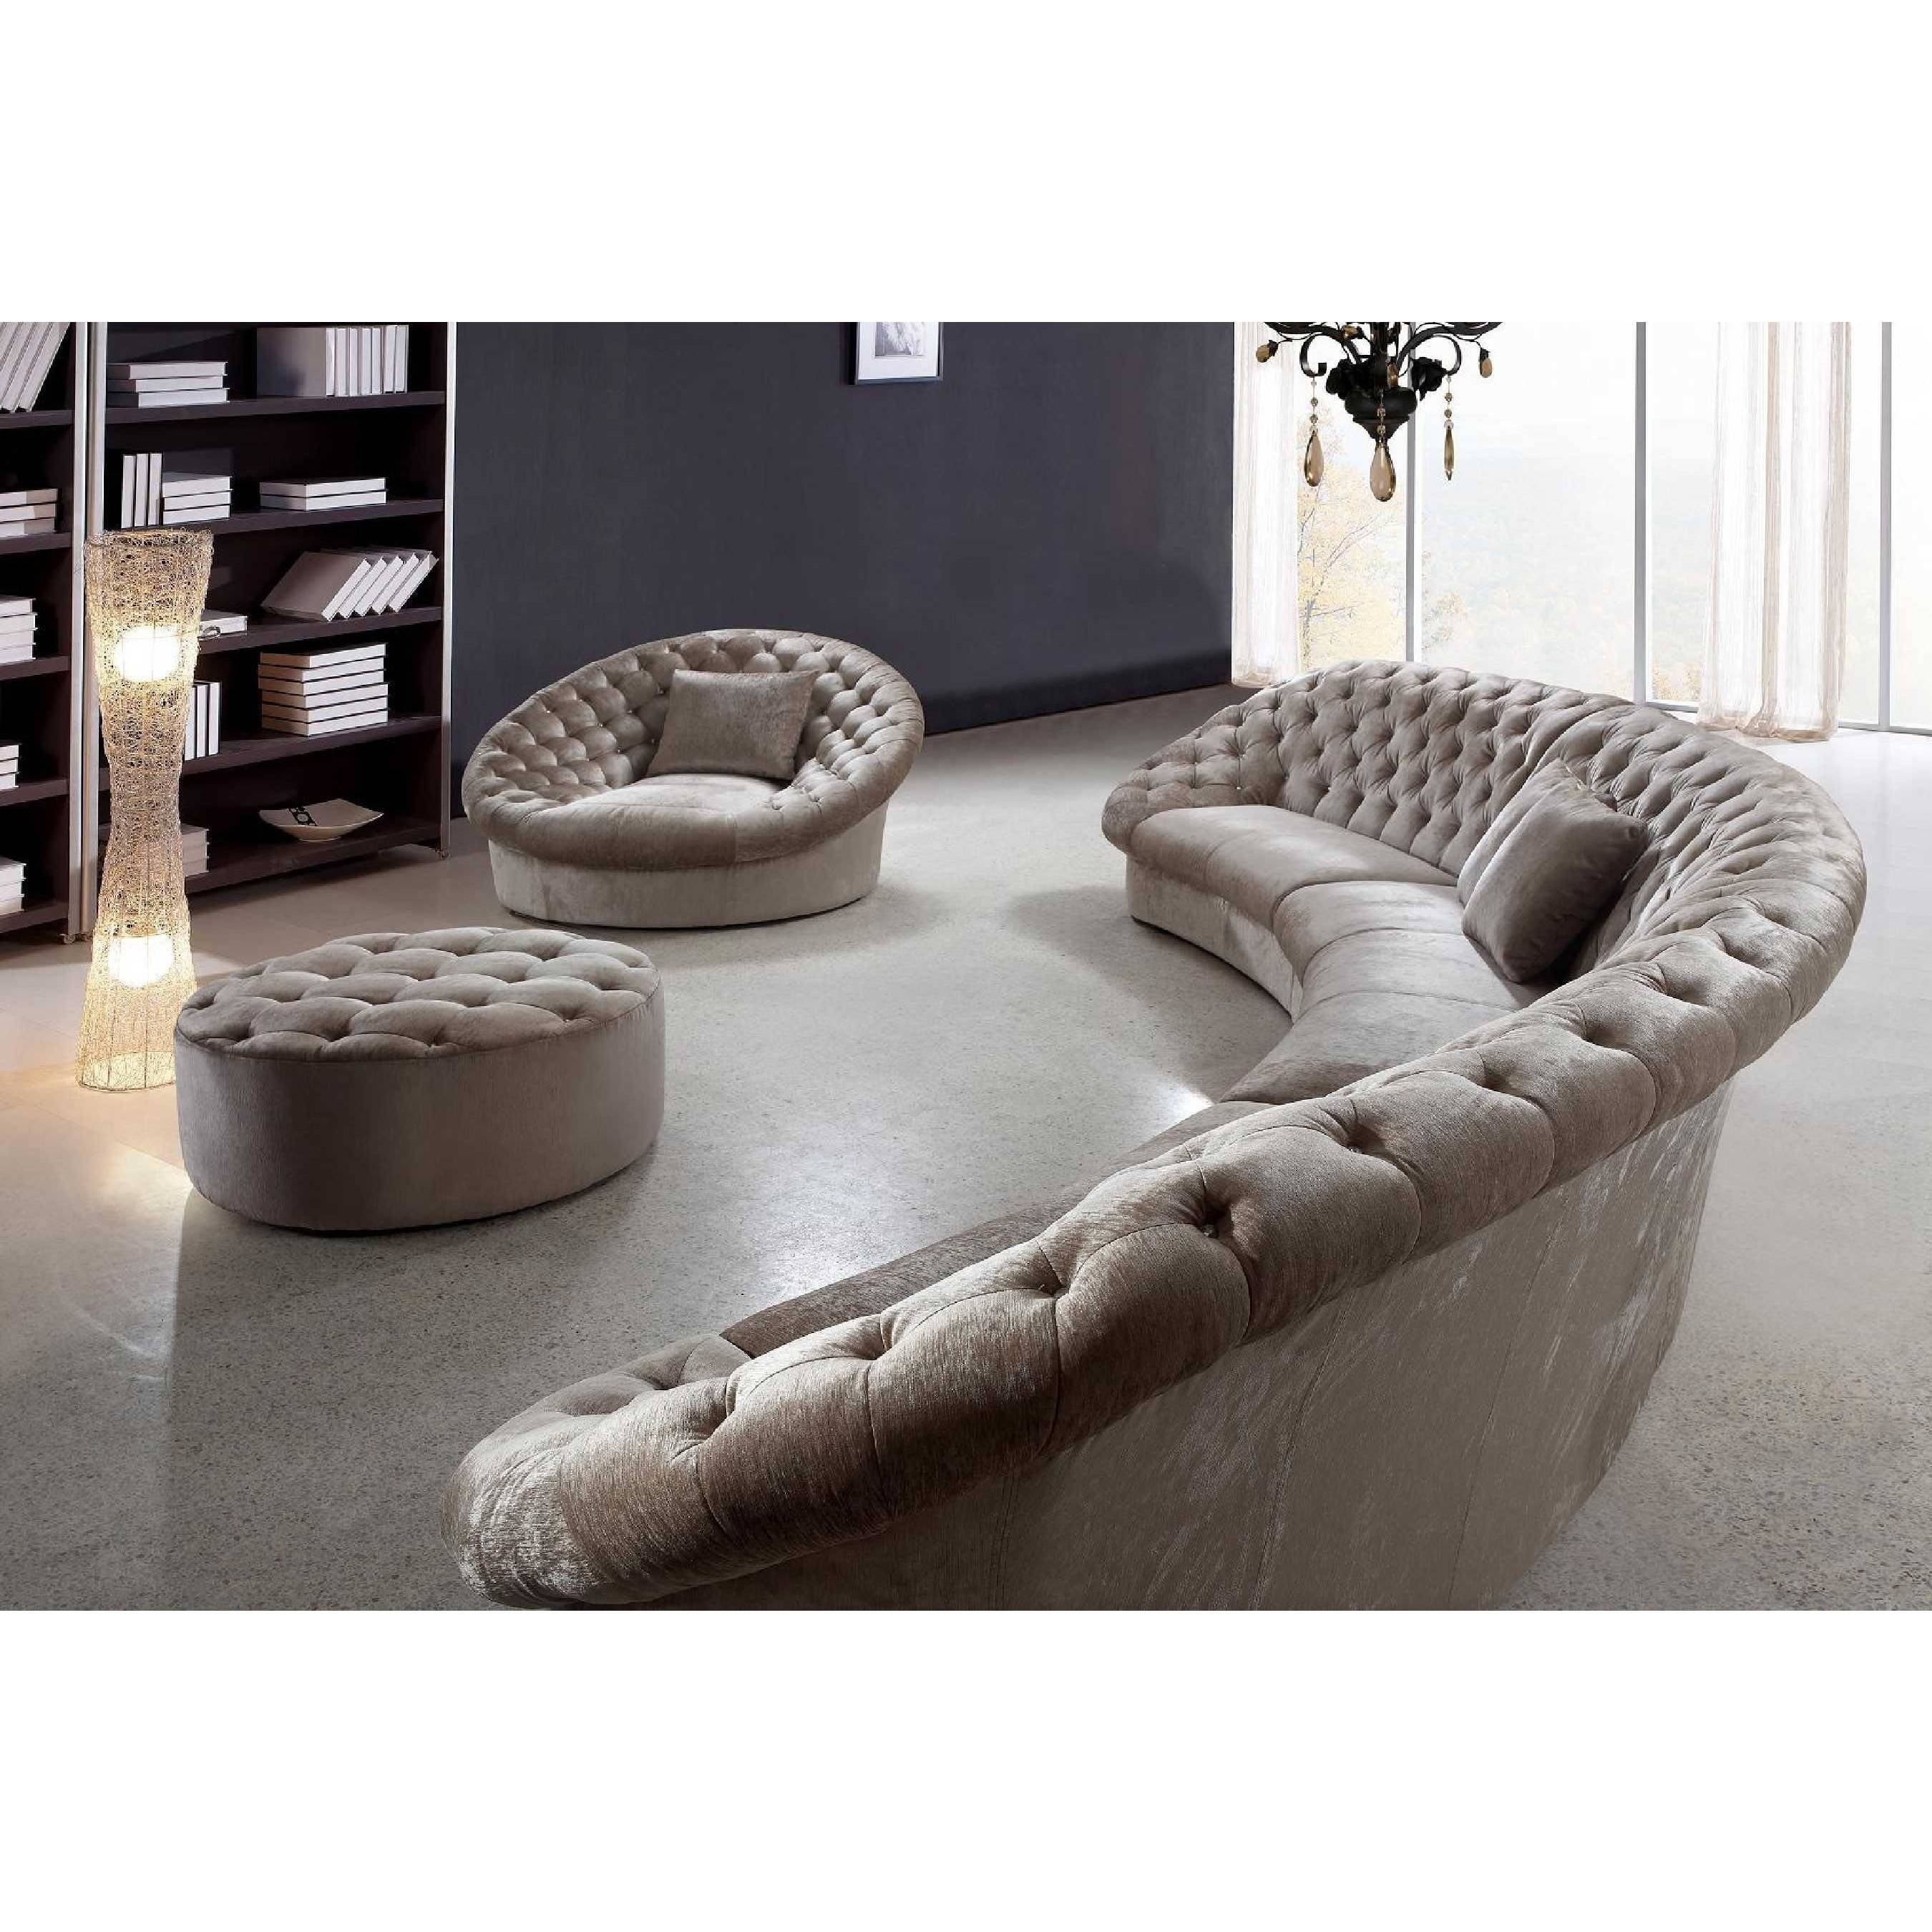 Round Sofa Chair Pinterest | Tehranmix Decoration pertaining to Circle Sofa Chairs (Image 21 of 30)